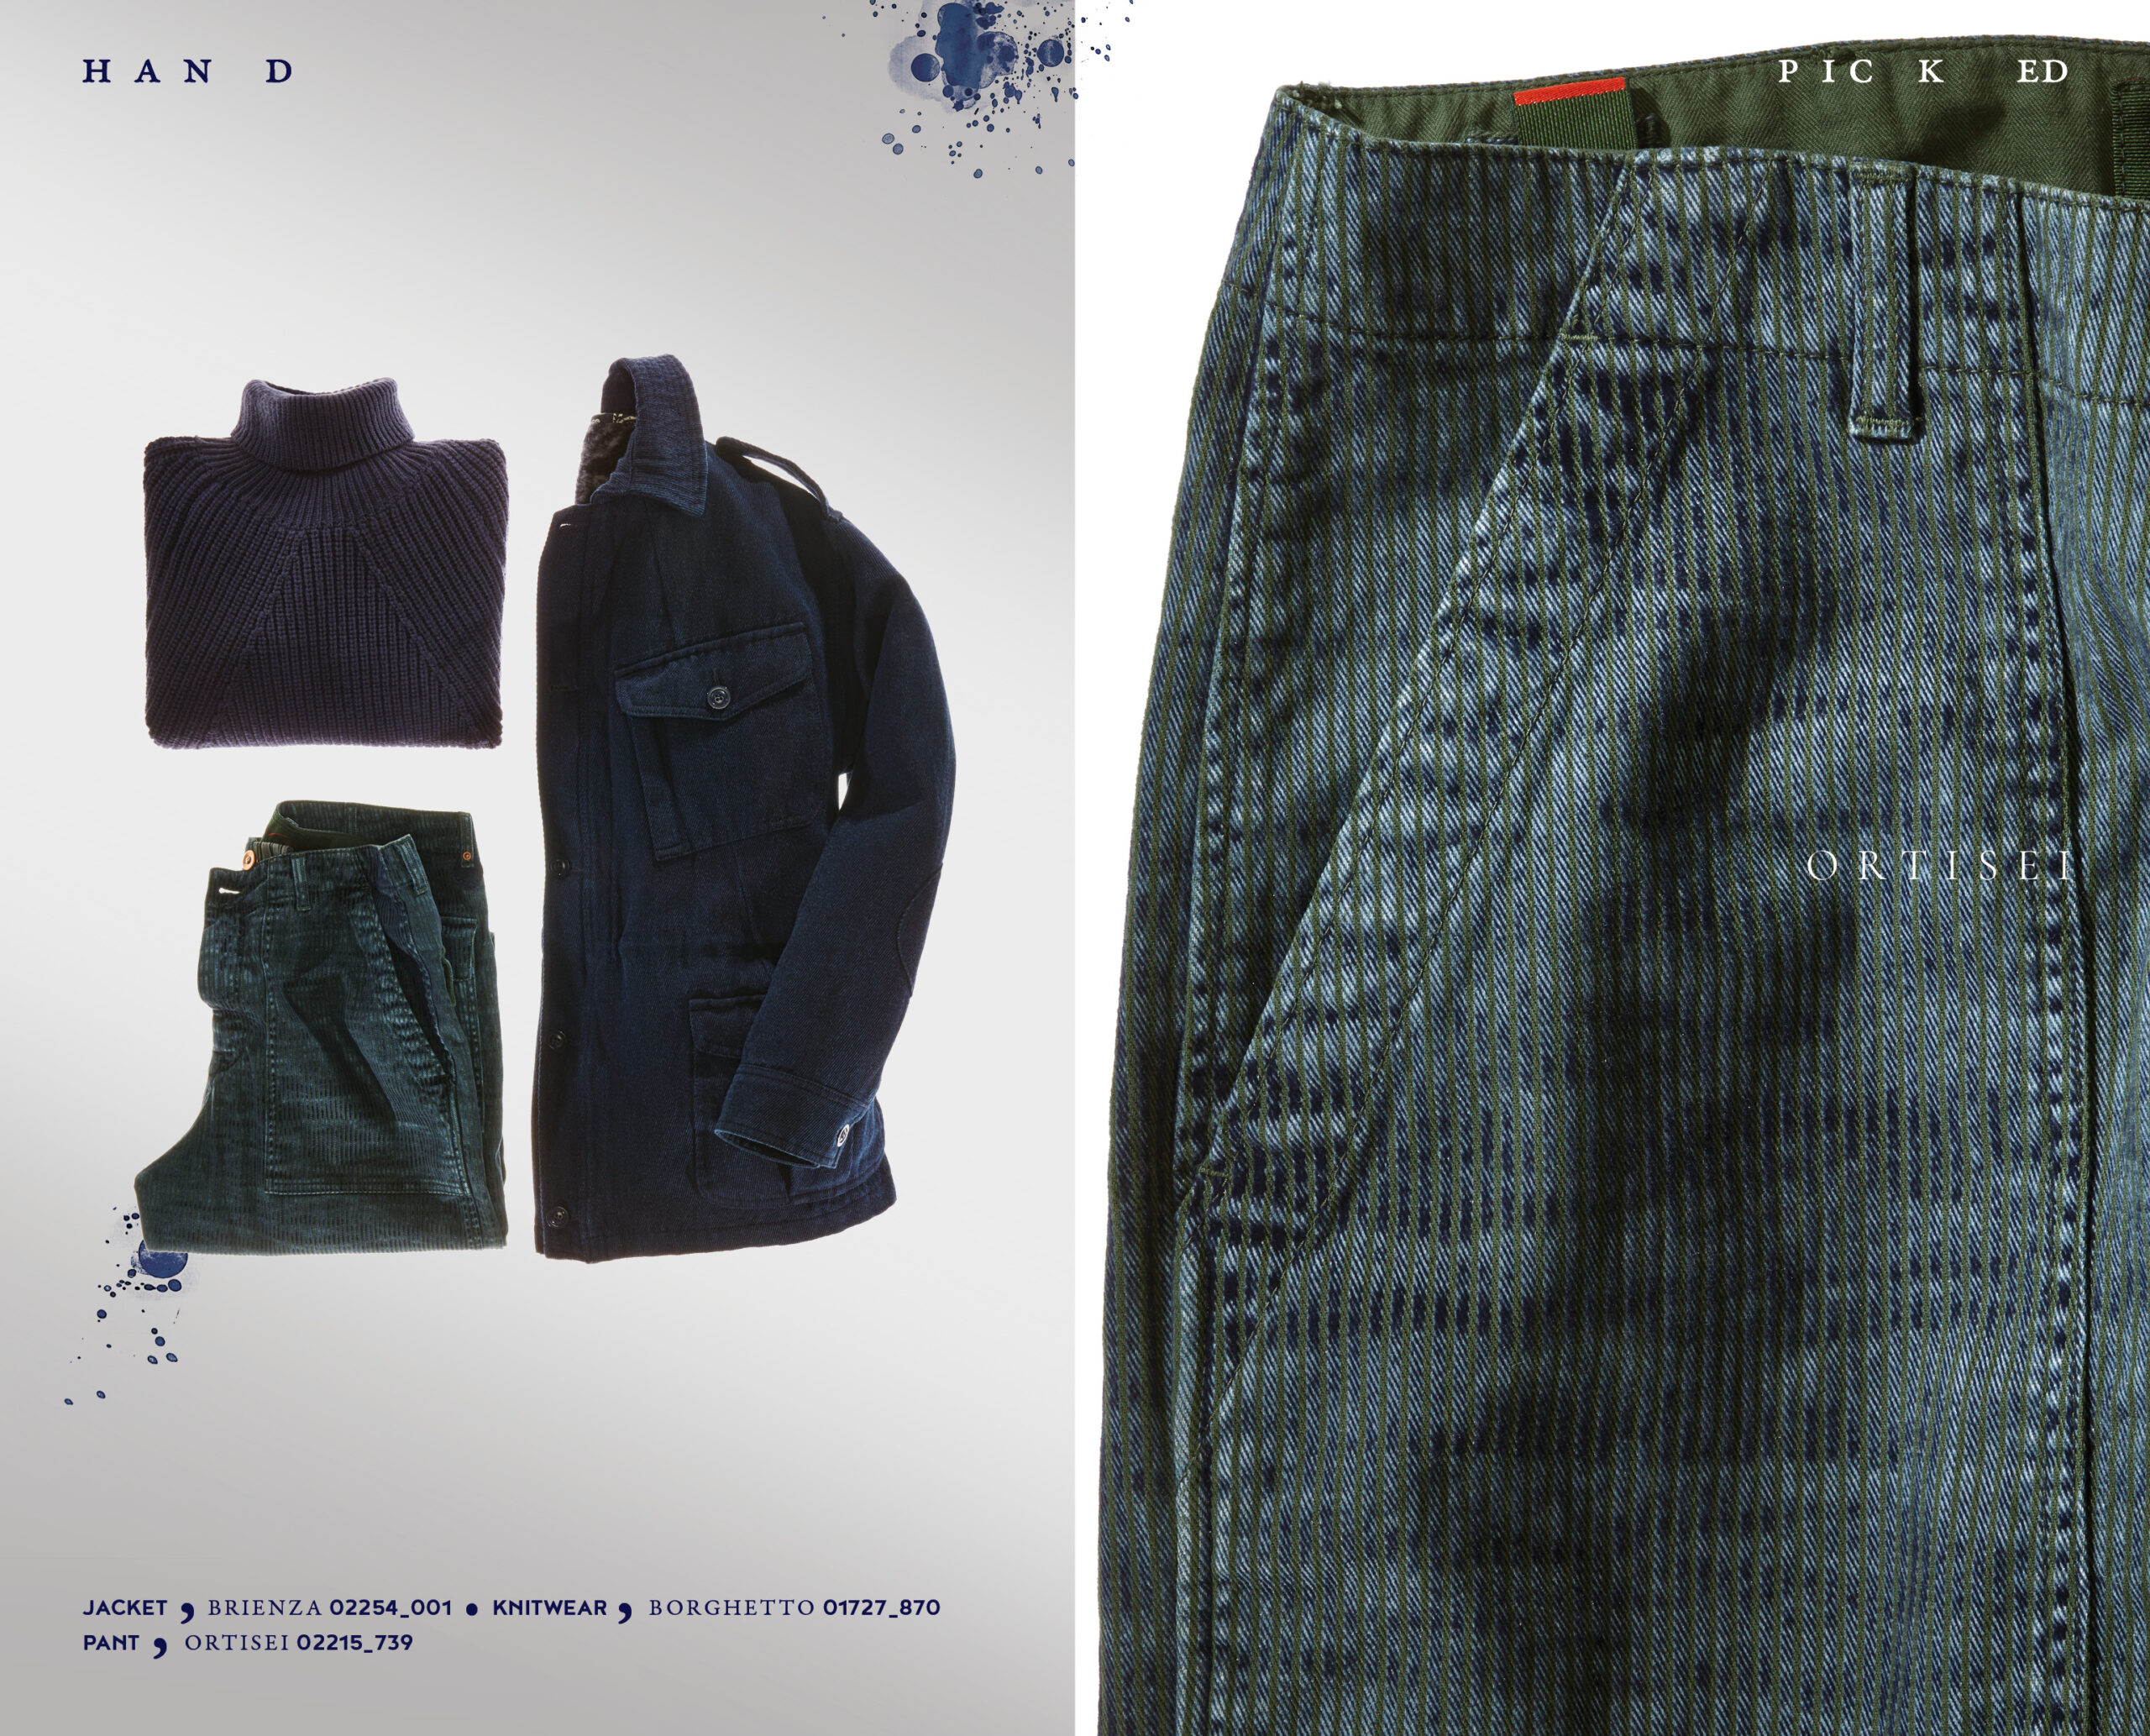 PER AGENTI_HAND PICKED_LOOK BOOK_FW20-21- 25 APRILE8